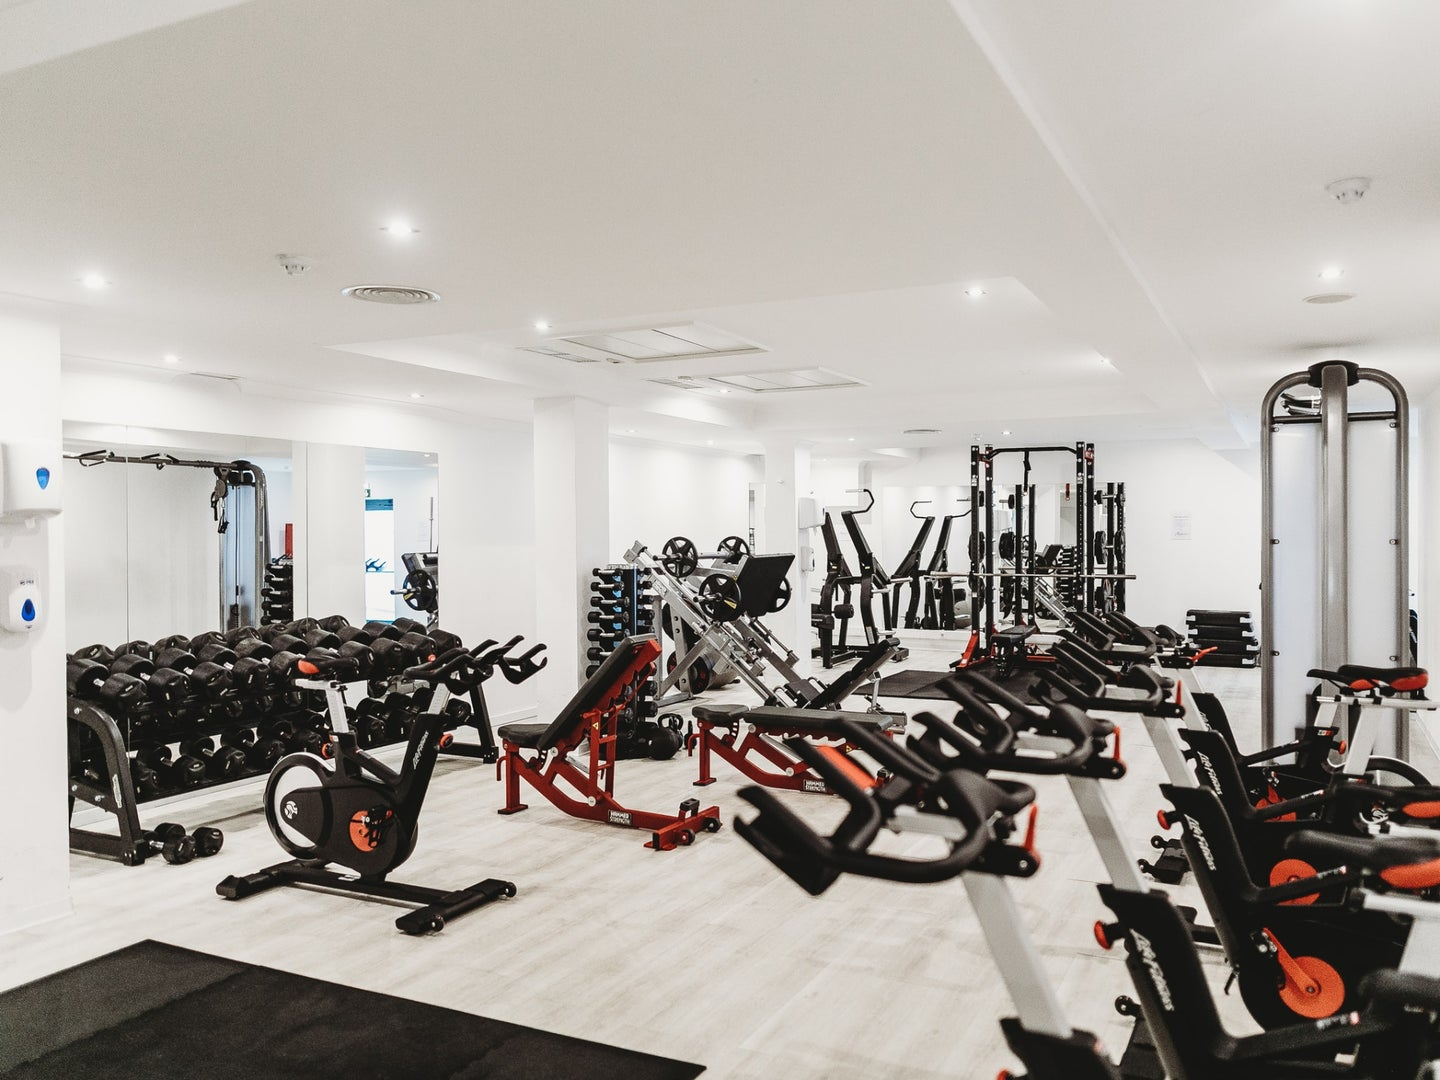 a gym full of exercise equipment